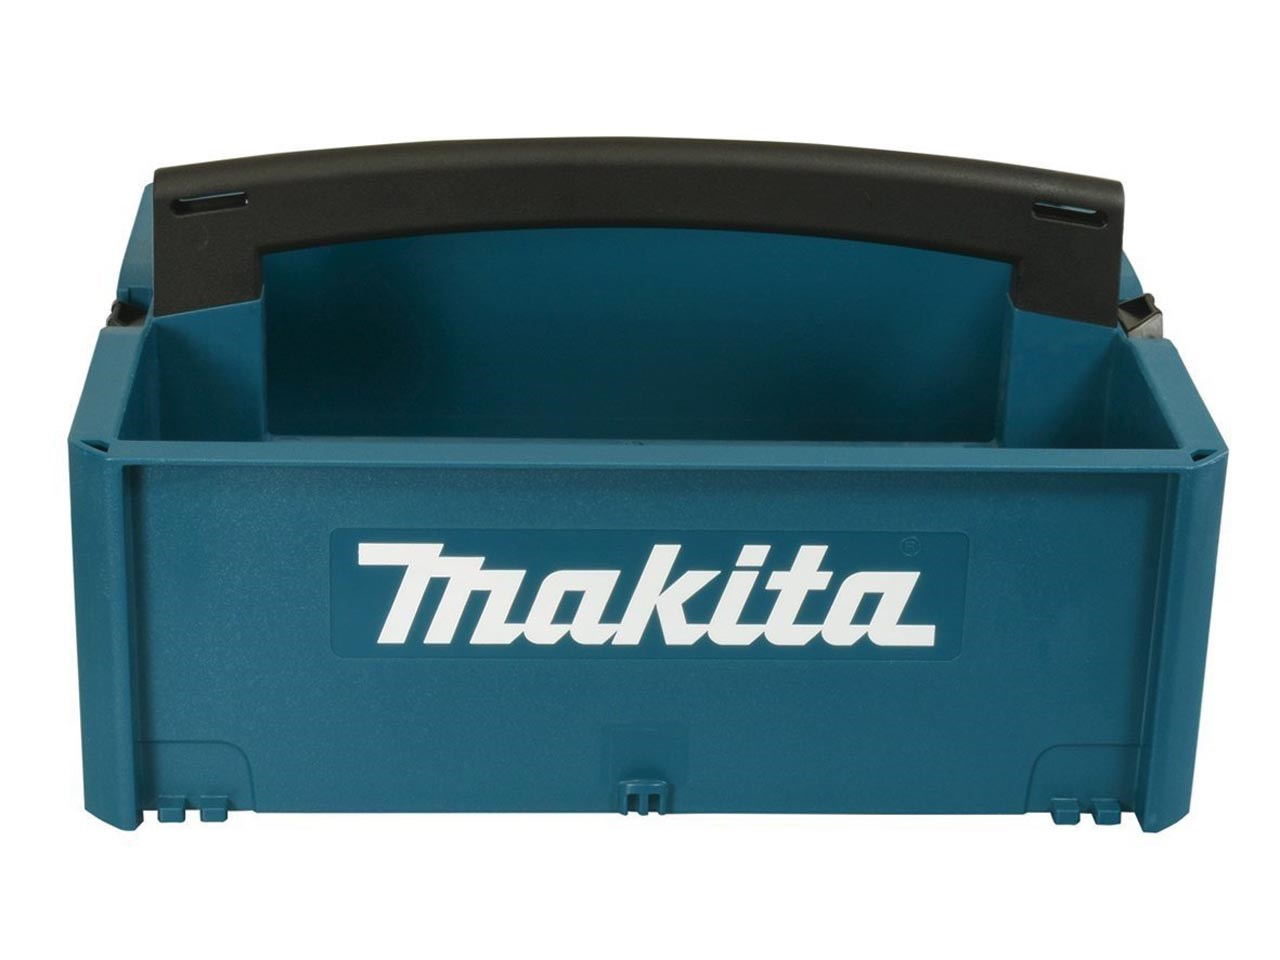 MAKITA STACKING CASE TOTE BOX - P-83836 - 395MM (L) X 295MM (W) X 200MM (H)